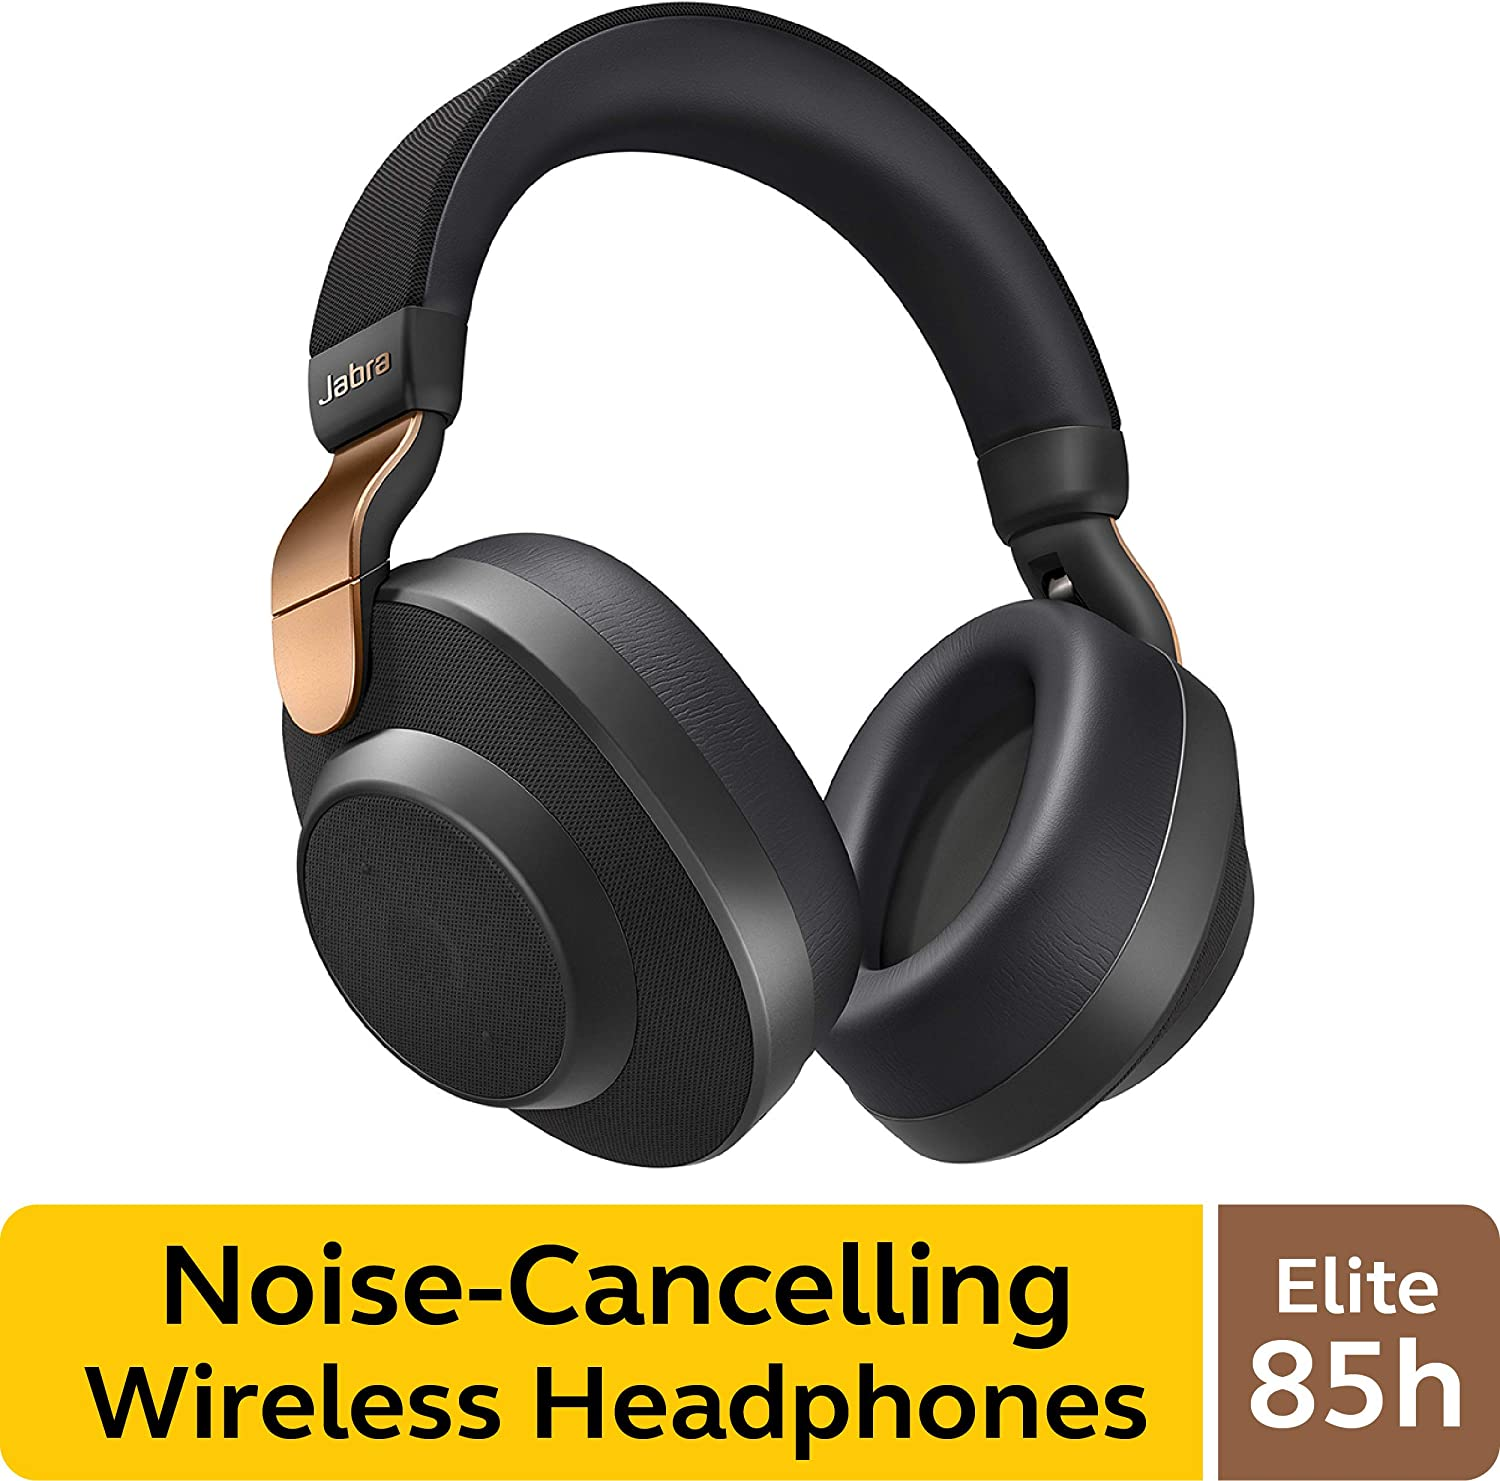 Amazon Com Jabra Elite 85h Wireless Noise Canceling Headphones Copper Black Over Ear Bluetooth Headphones Compatible With Iphone Android Built In Microphone Long Battery Life Rain Water Resistant